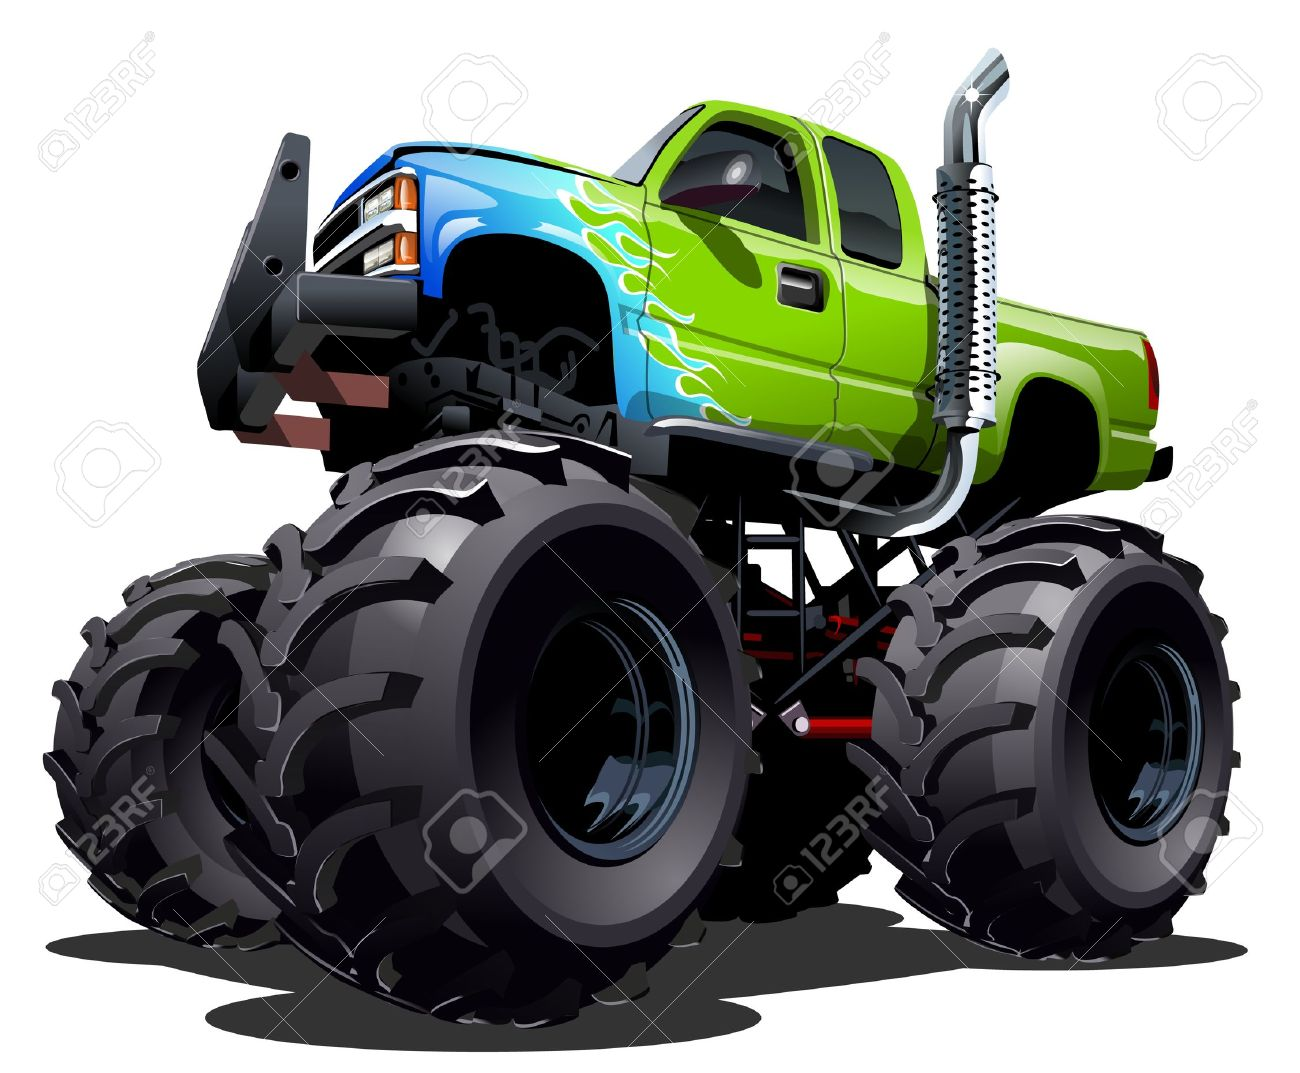 Cartoon Monster Truck Royalty Free Cliparts Vectors And Stock Illustration Image 29480740